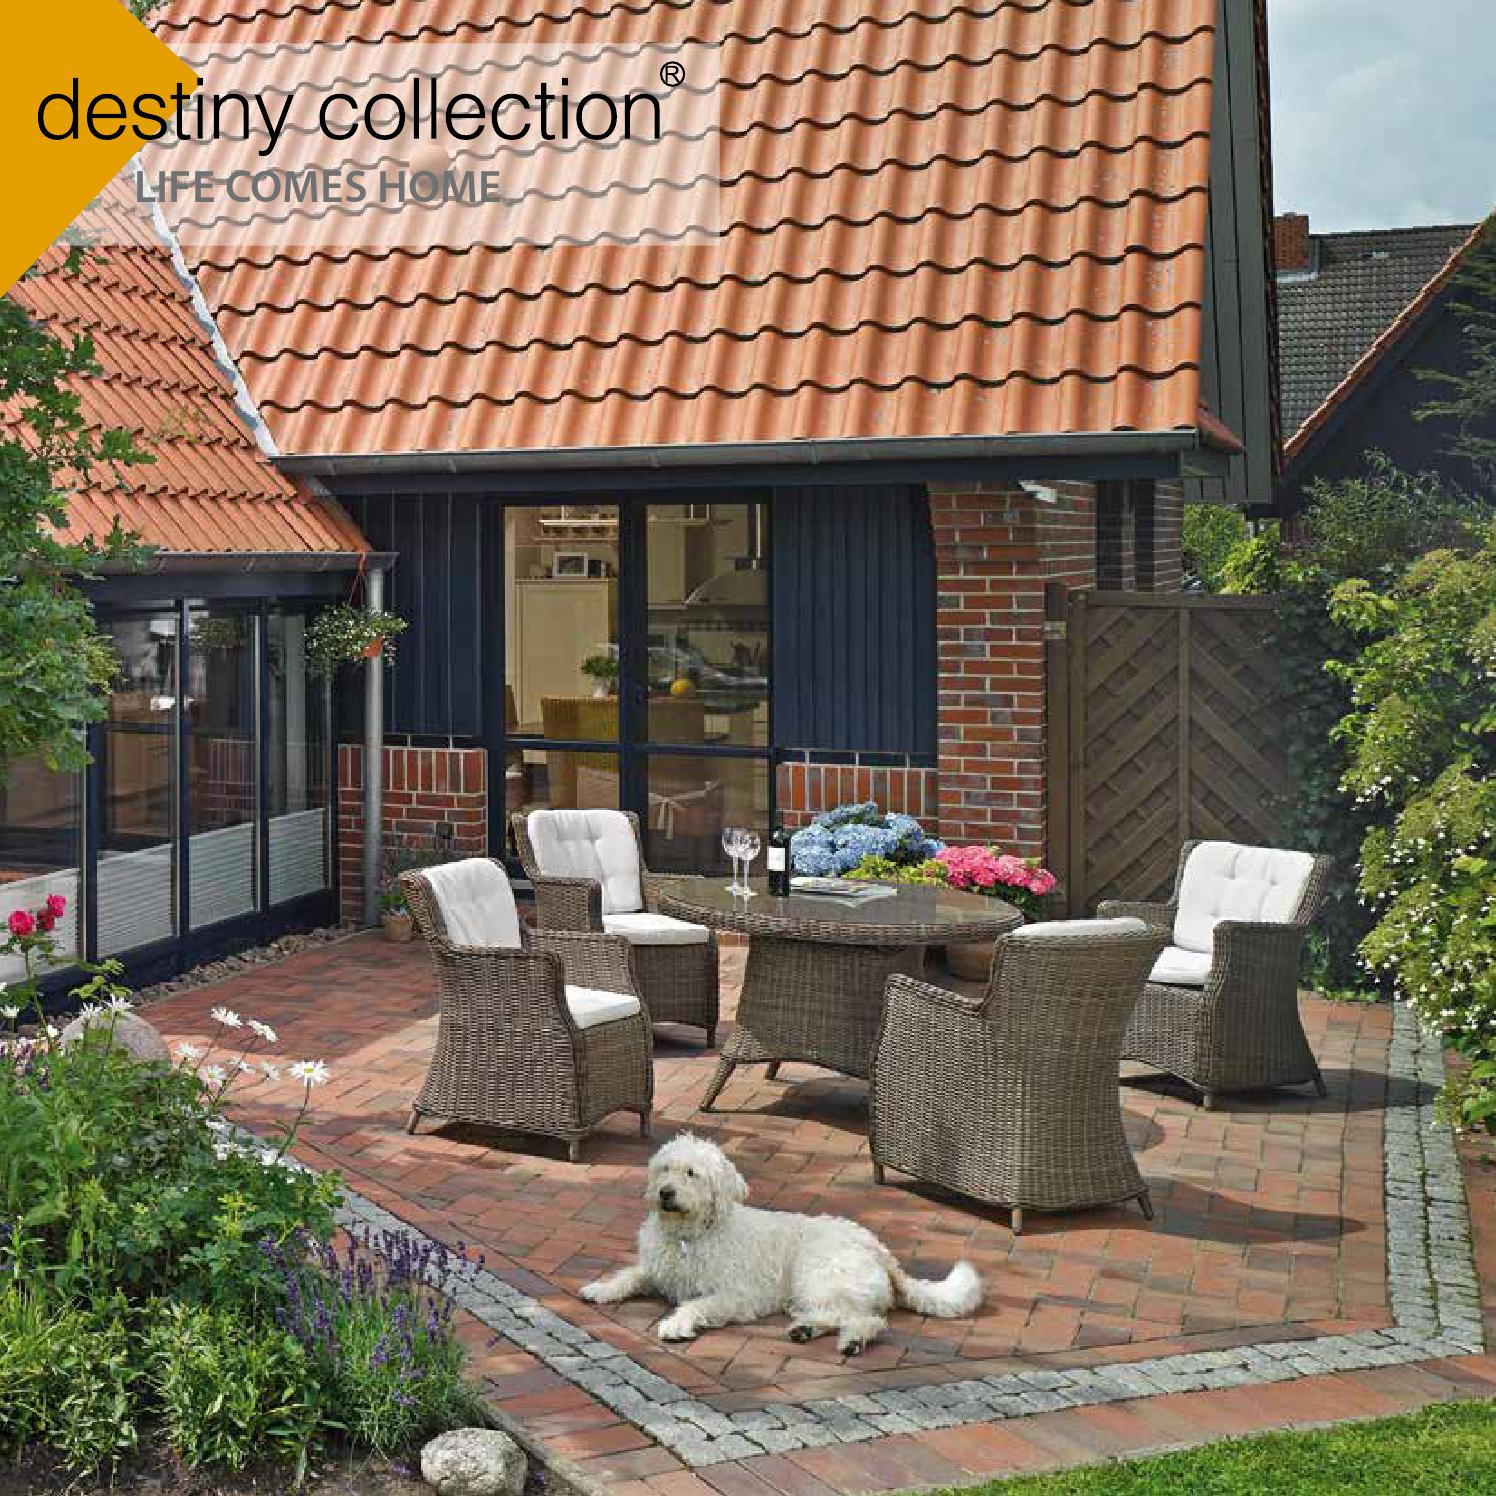 Holzklapptische Der Neue Katalog Destiny Collection 2015 By Destiny